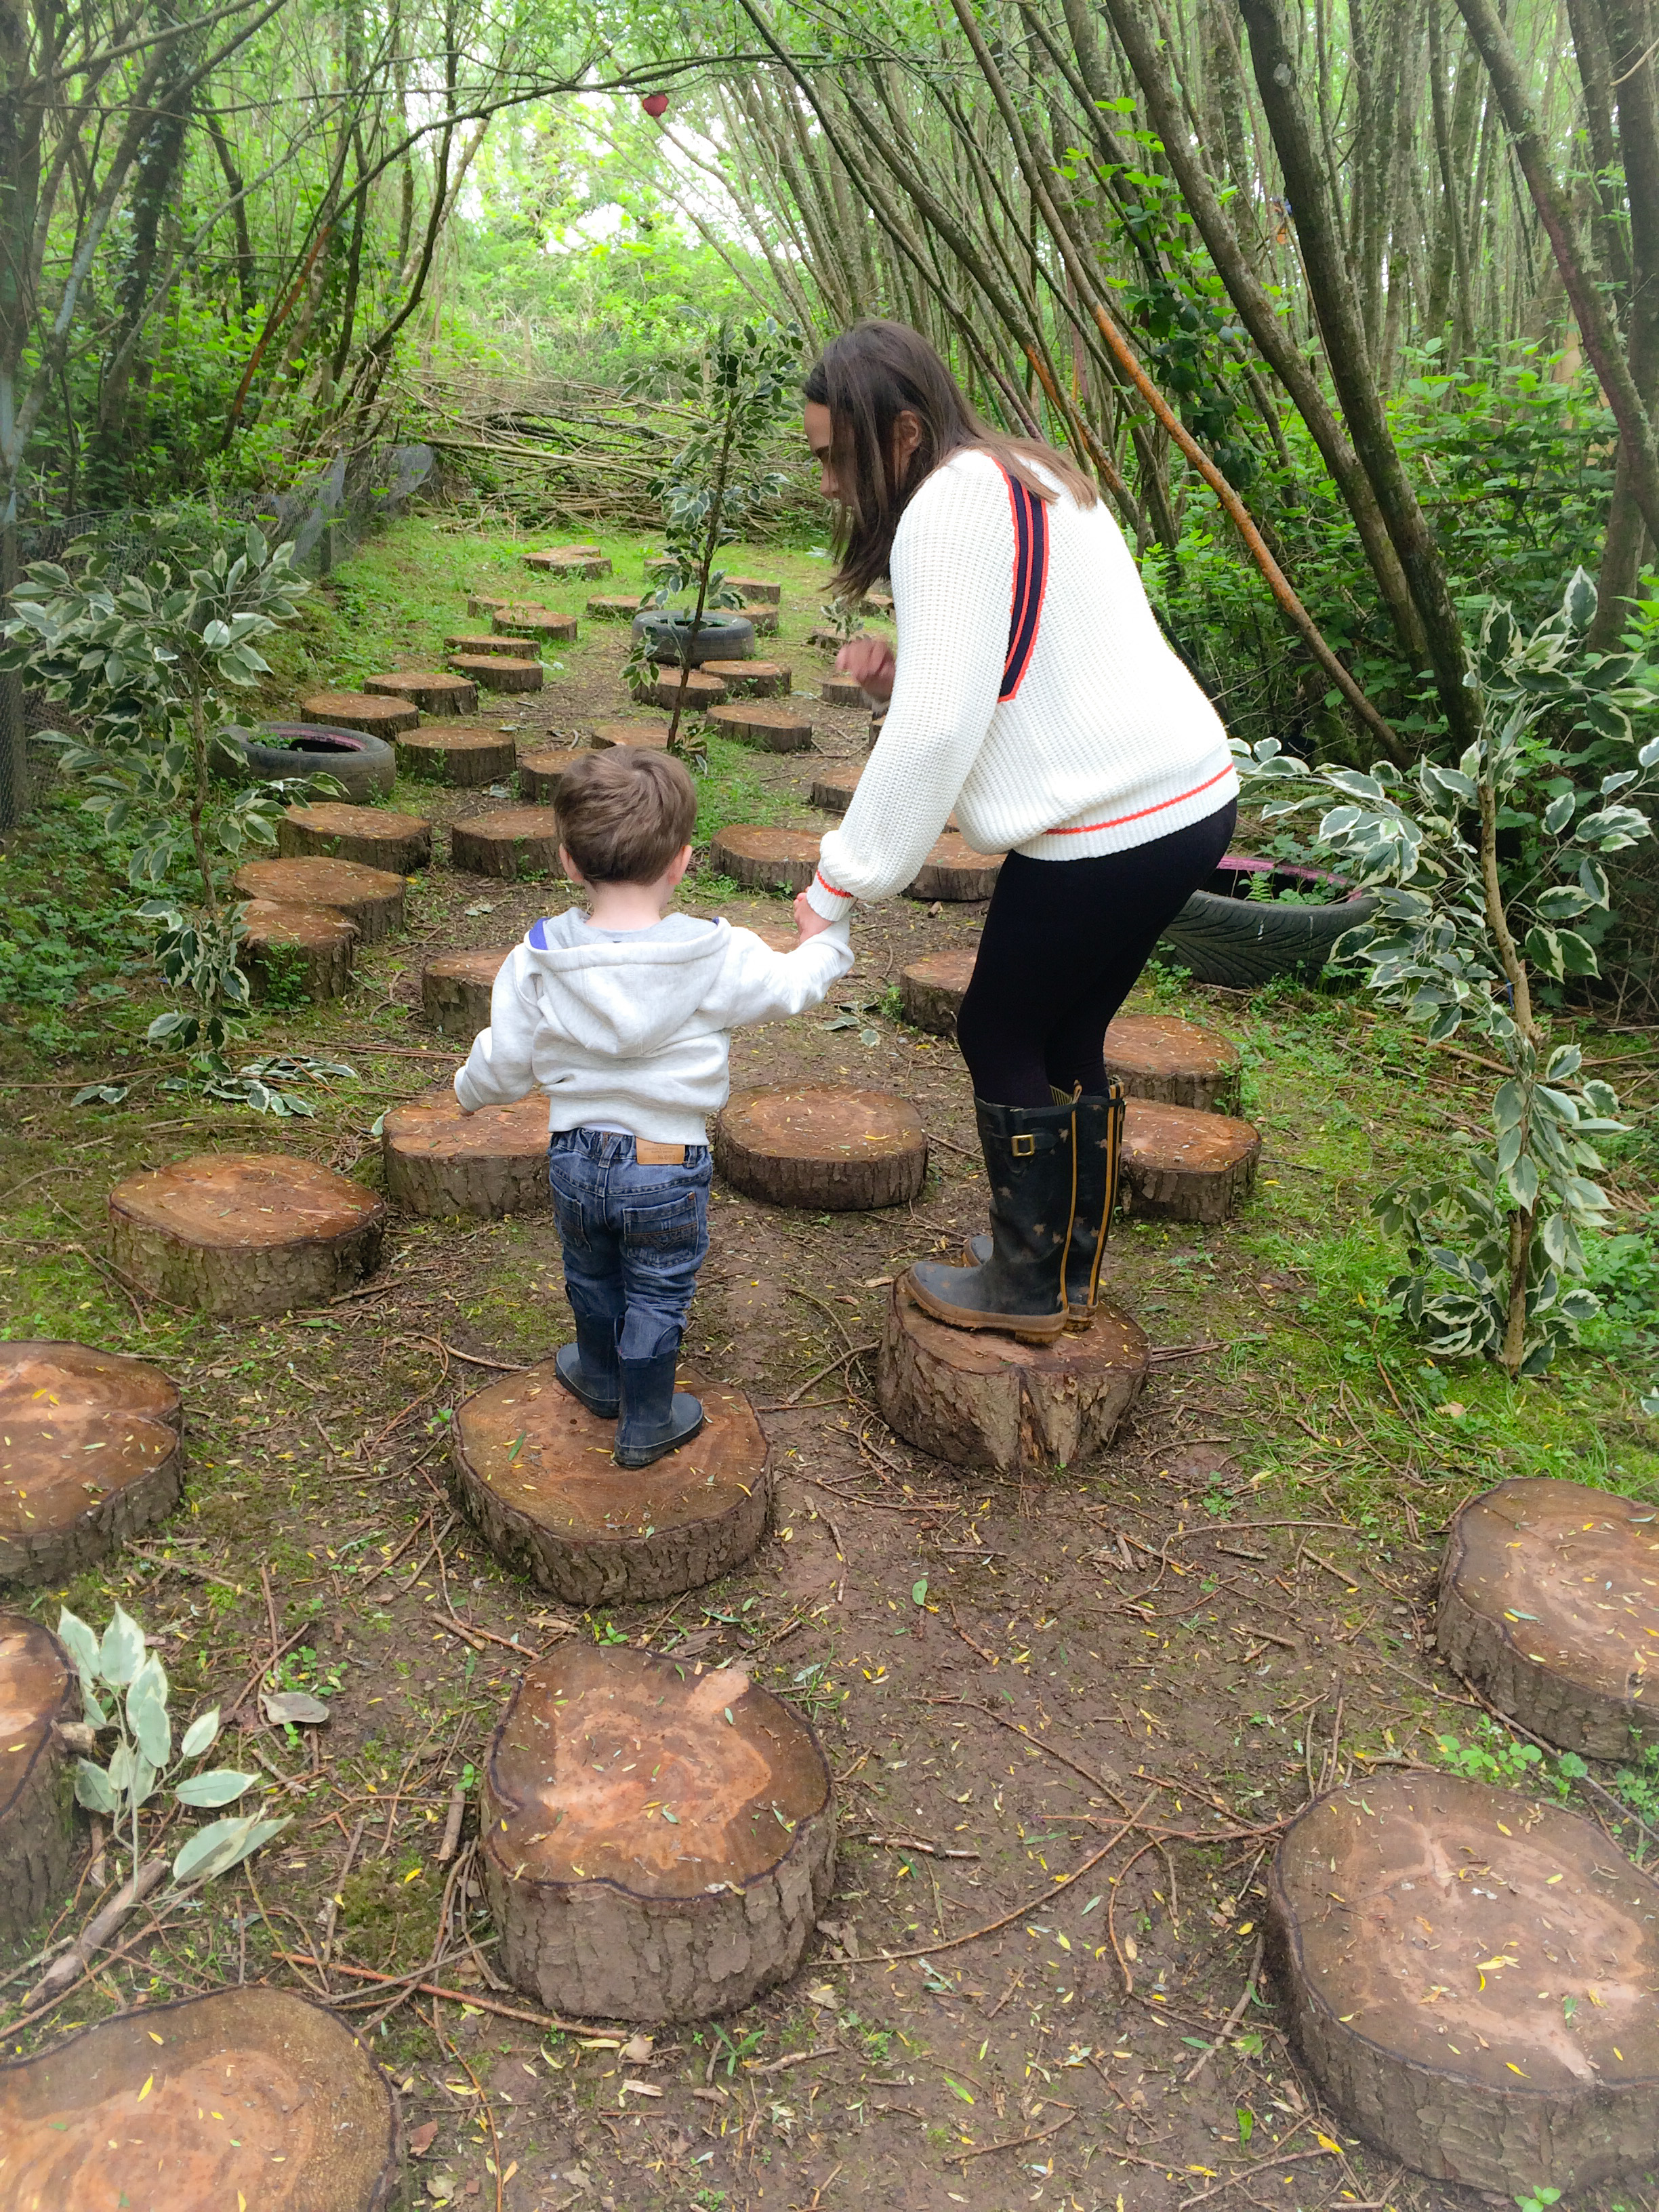 Bluestone Wales - The Secret Village trail